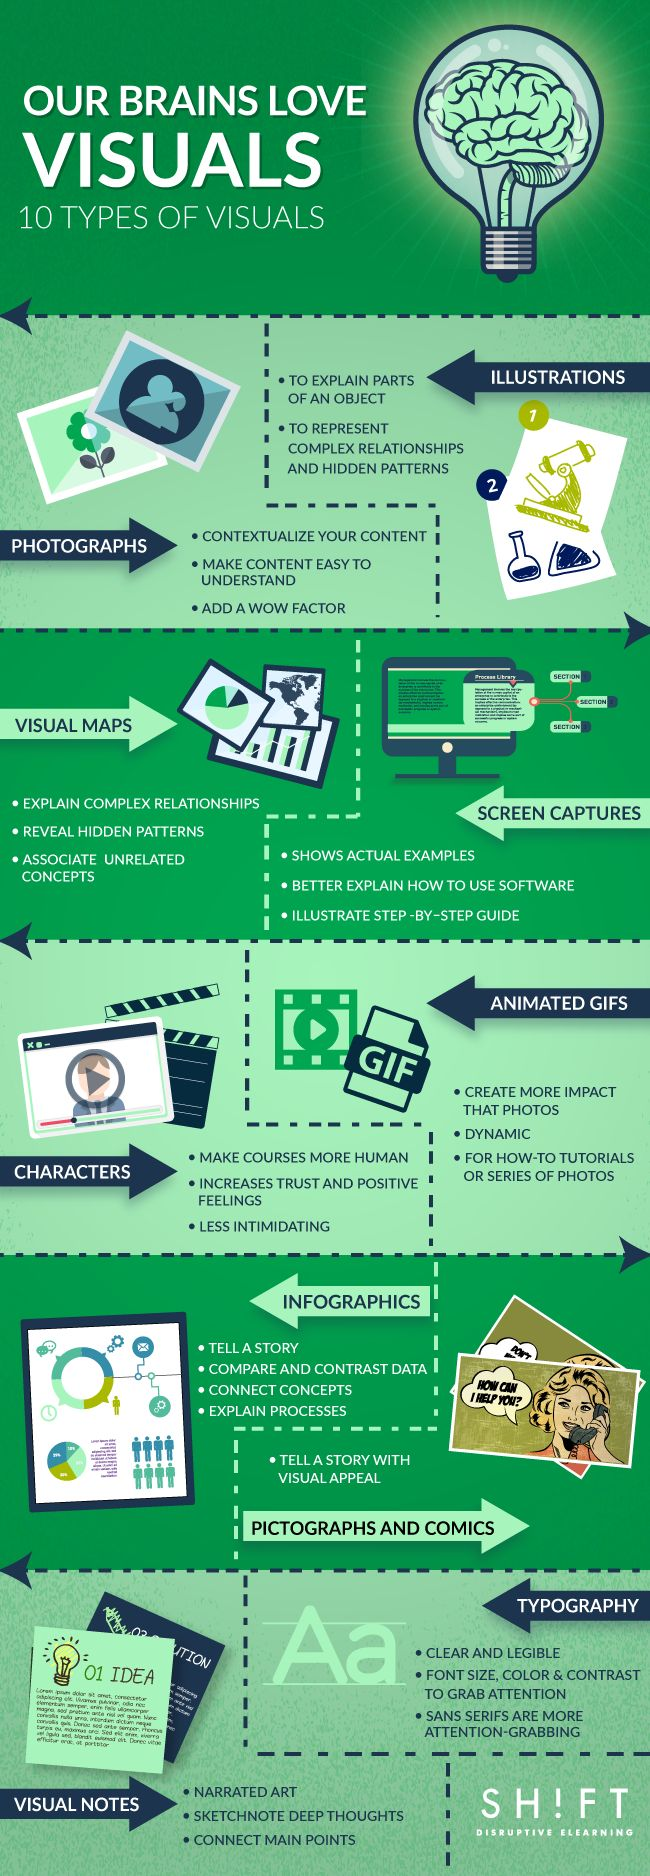 best ideas about visual learning learning styles types of visual content to improve learner engagement infographic elearninginfographics